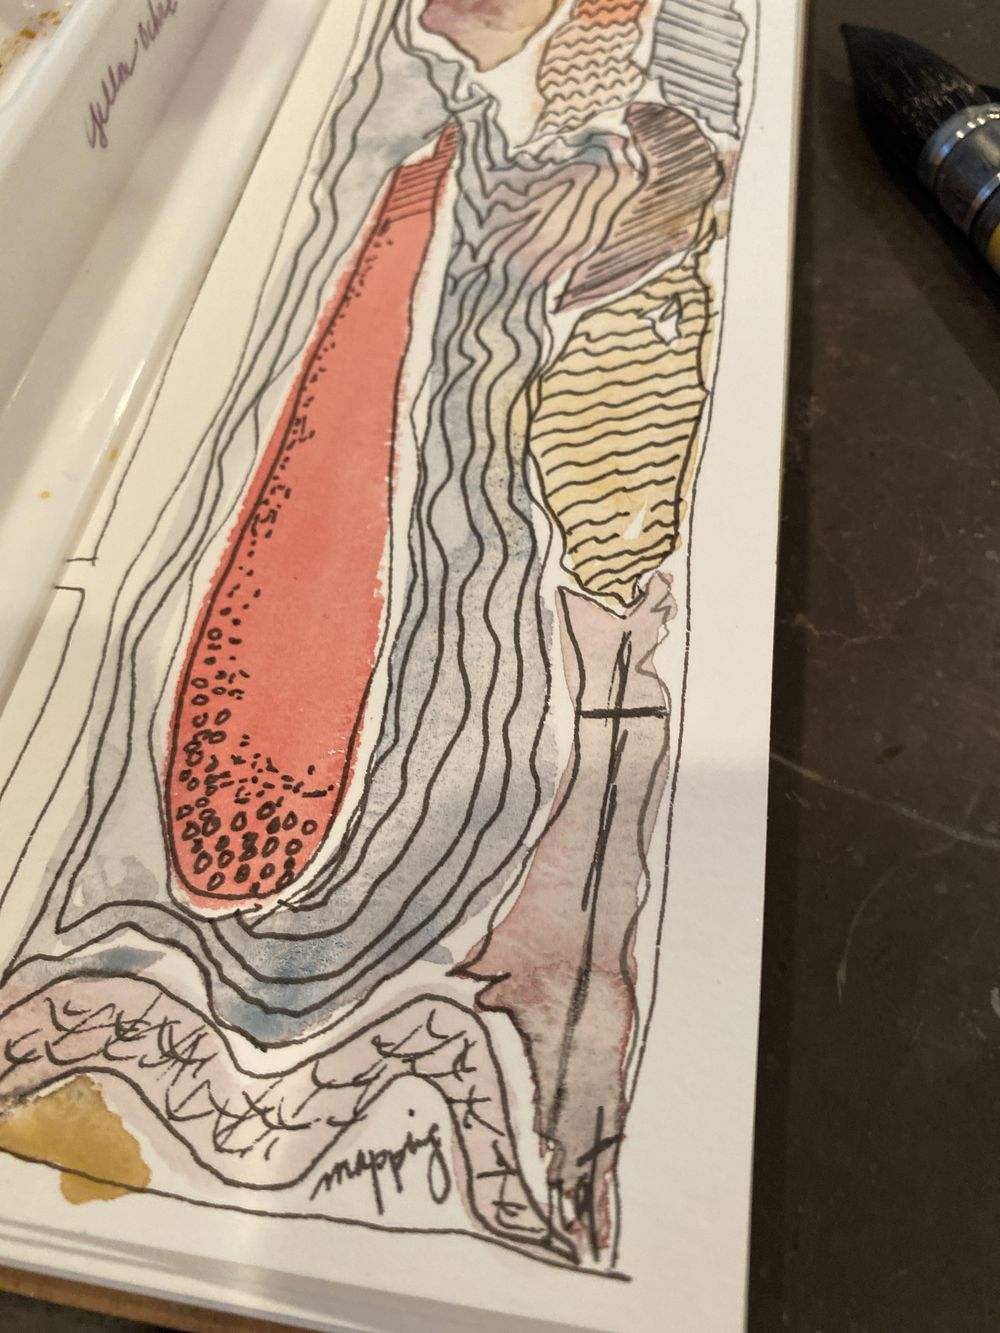 Watercolor marks/ abstract - image 2 - student project